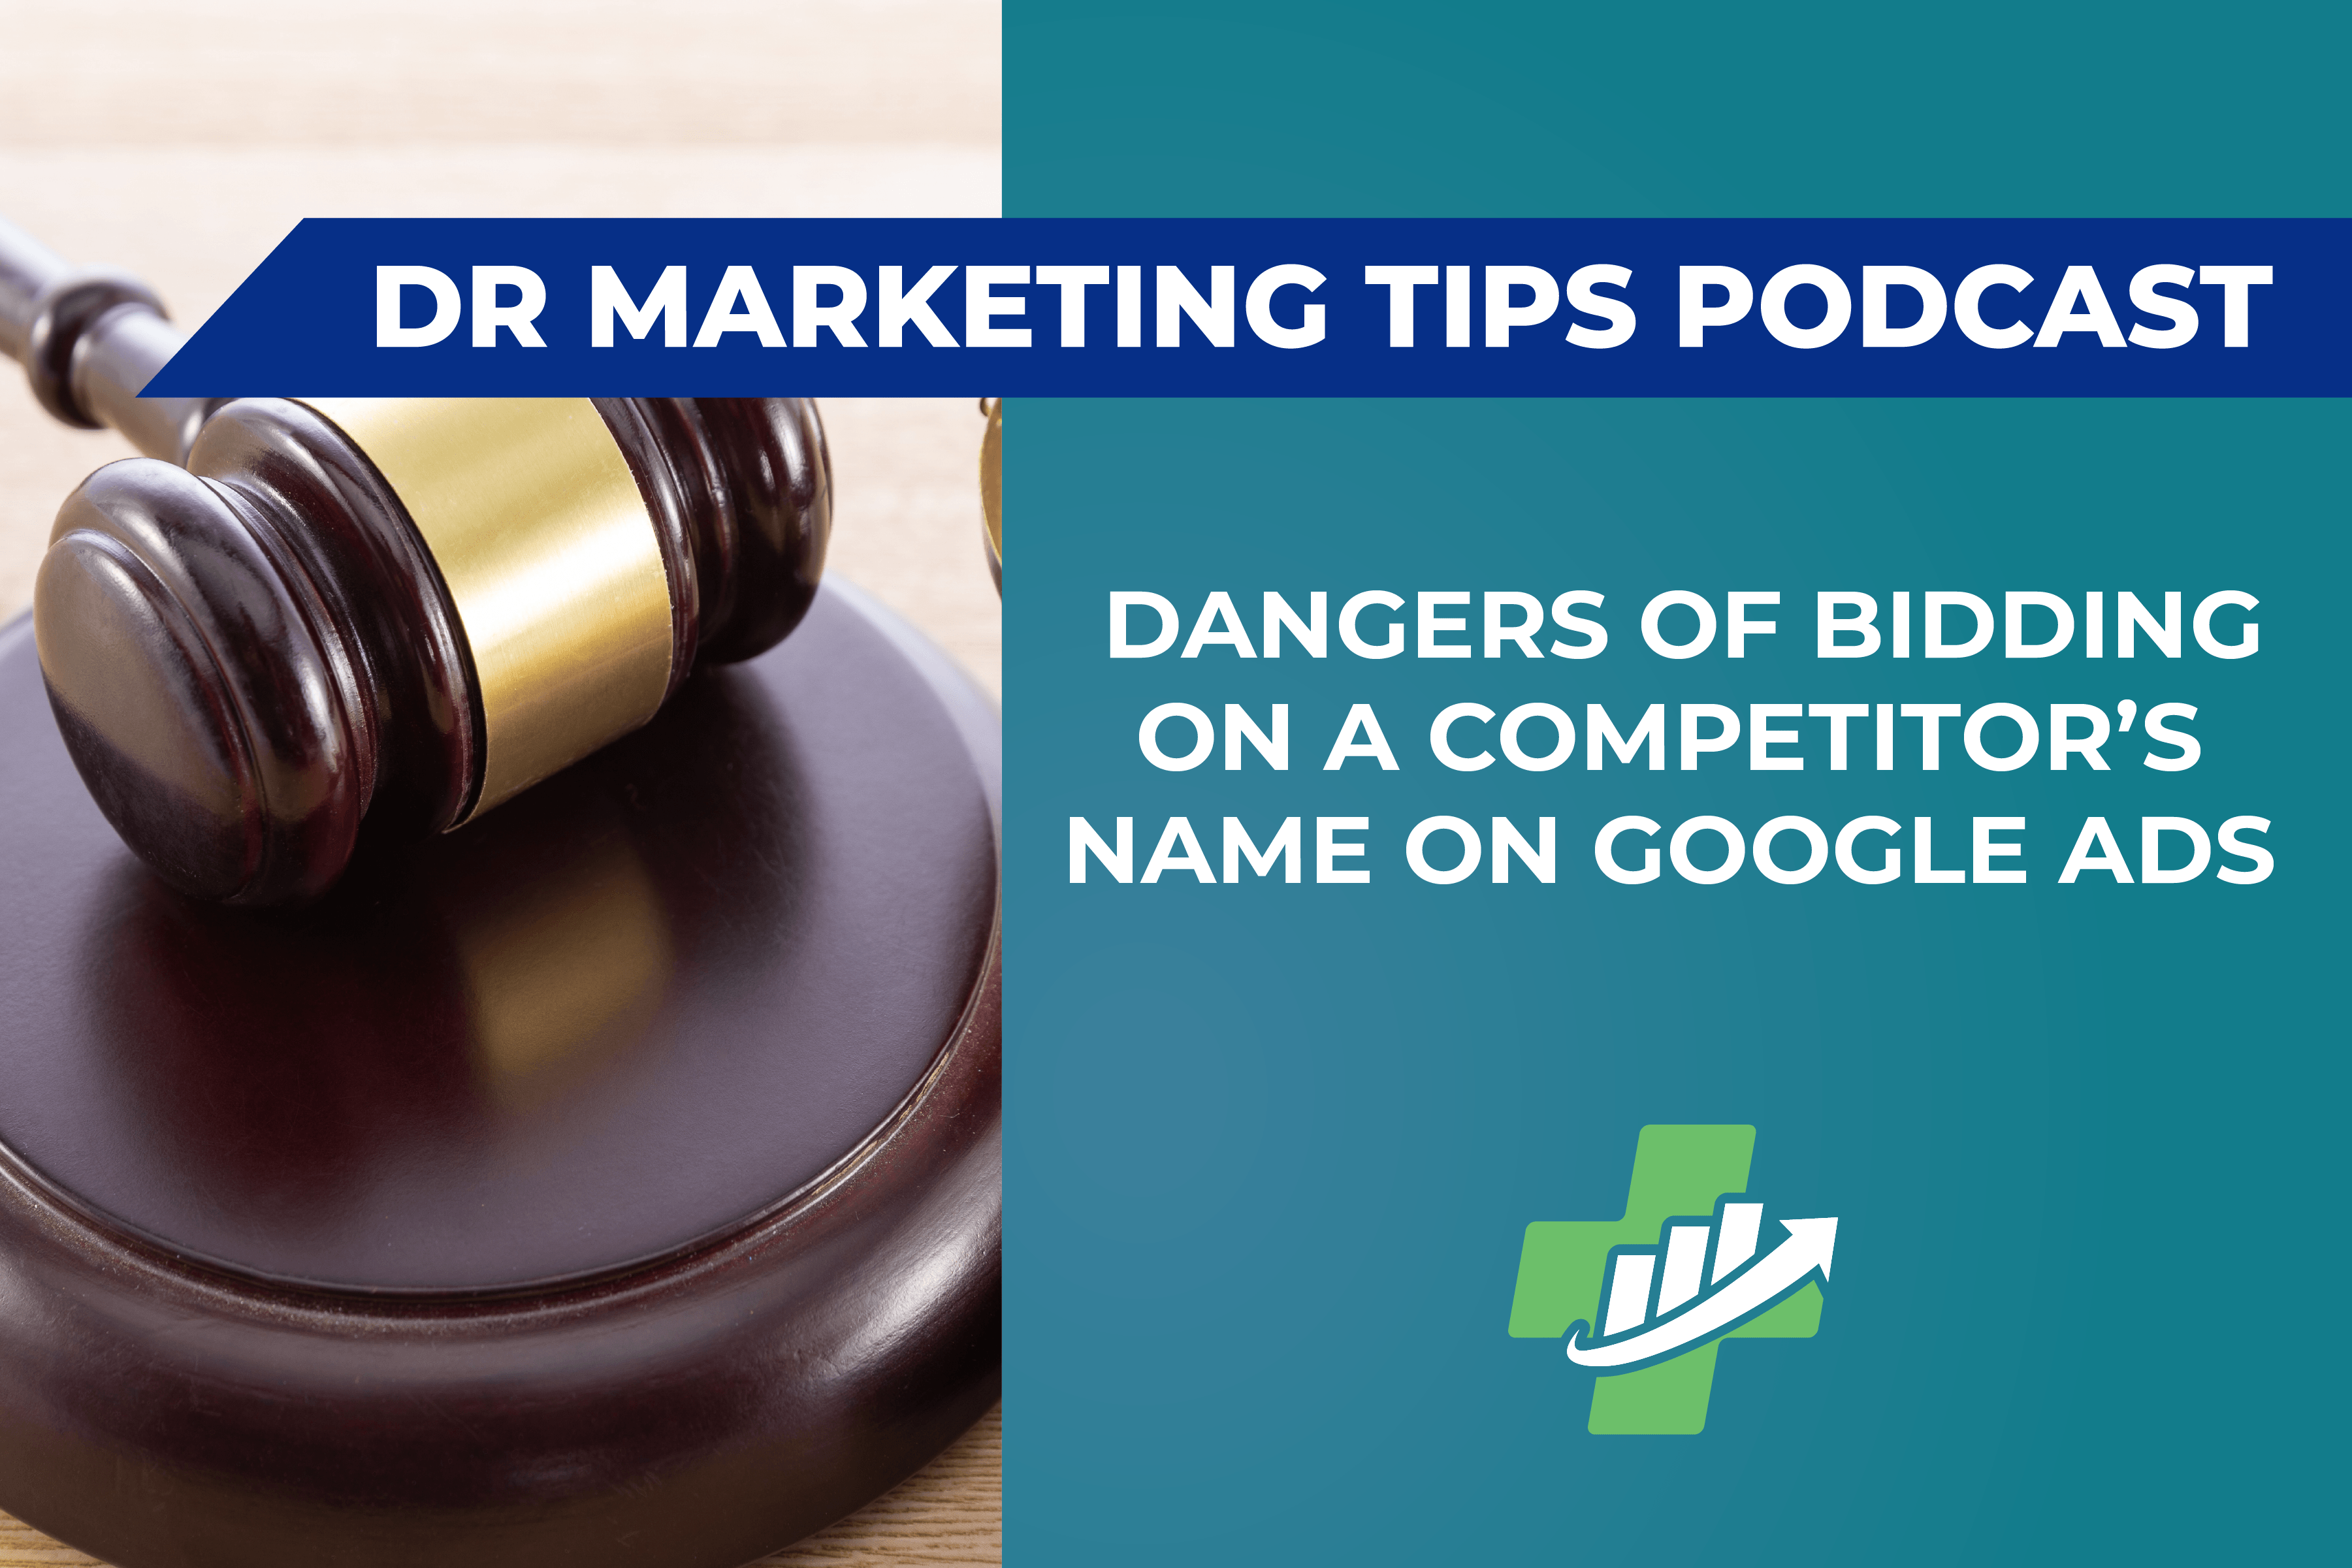 dangers of bidding on a competitor's name on google ads